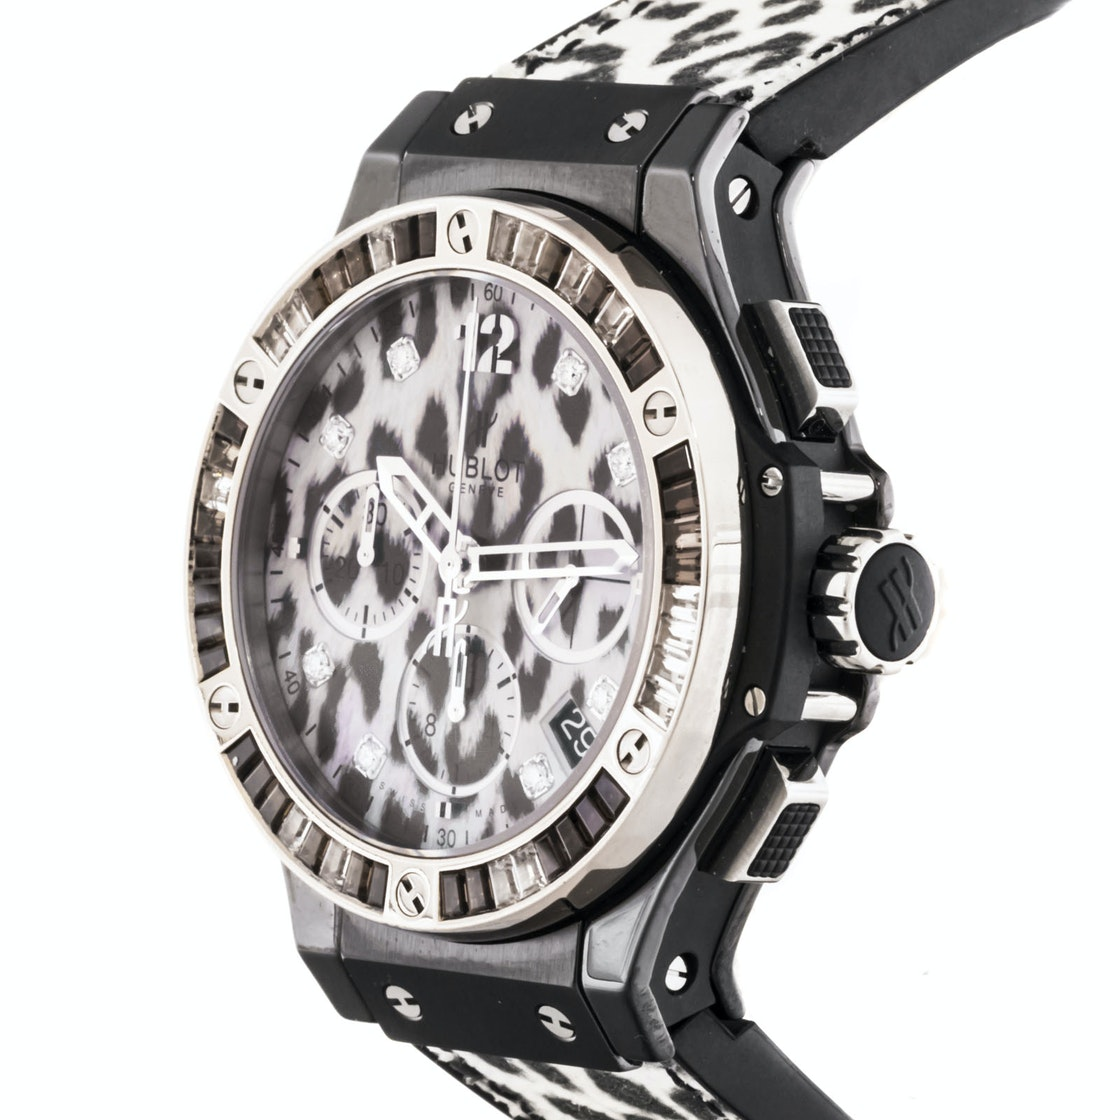 Hublot Big Bang Snow Leopard Chronograph Limited Edition 341.CW.7717.NR.1977